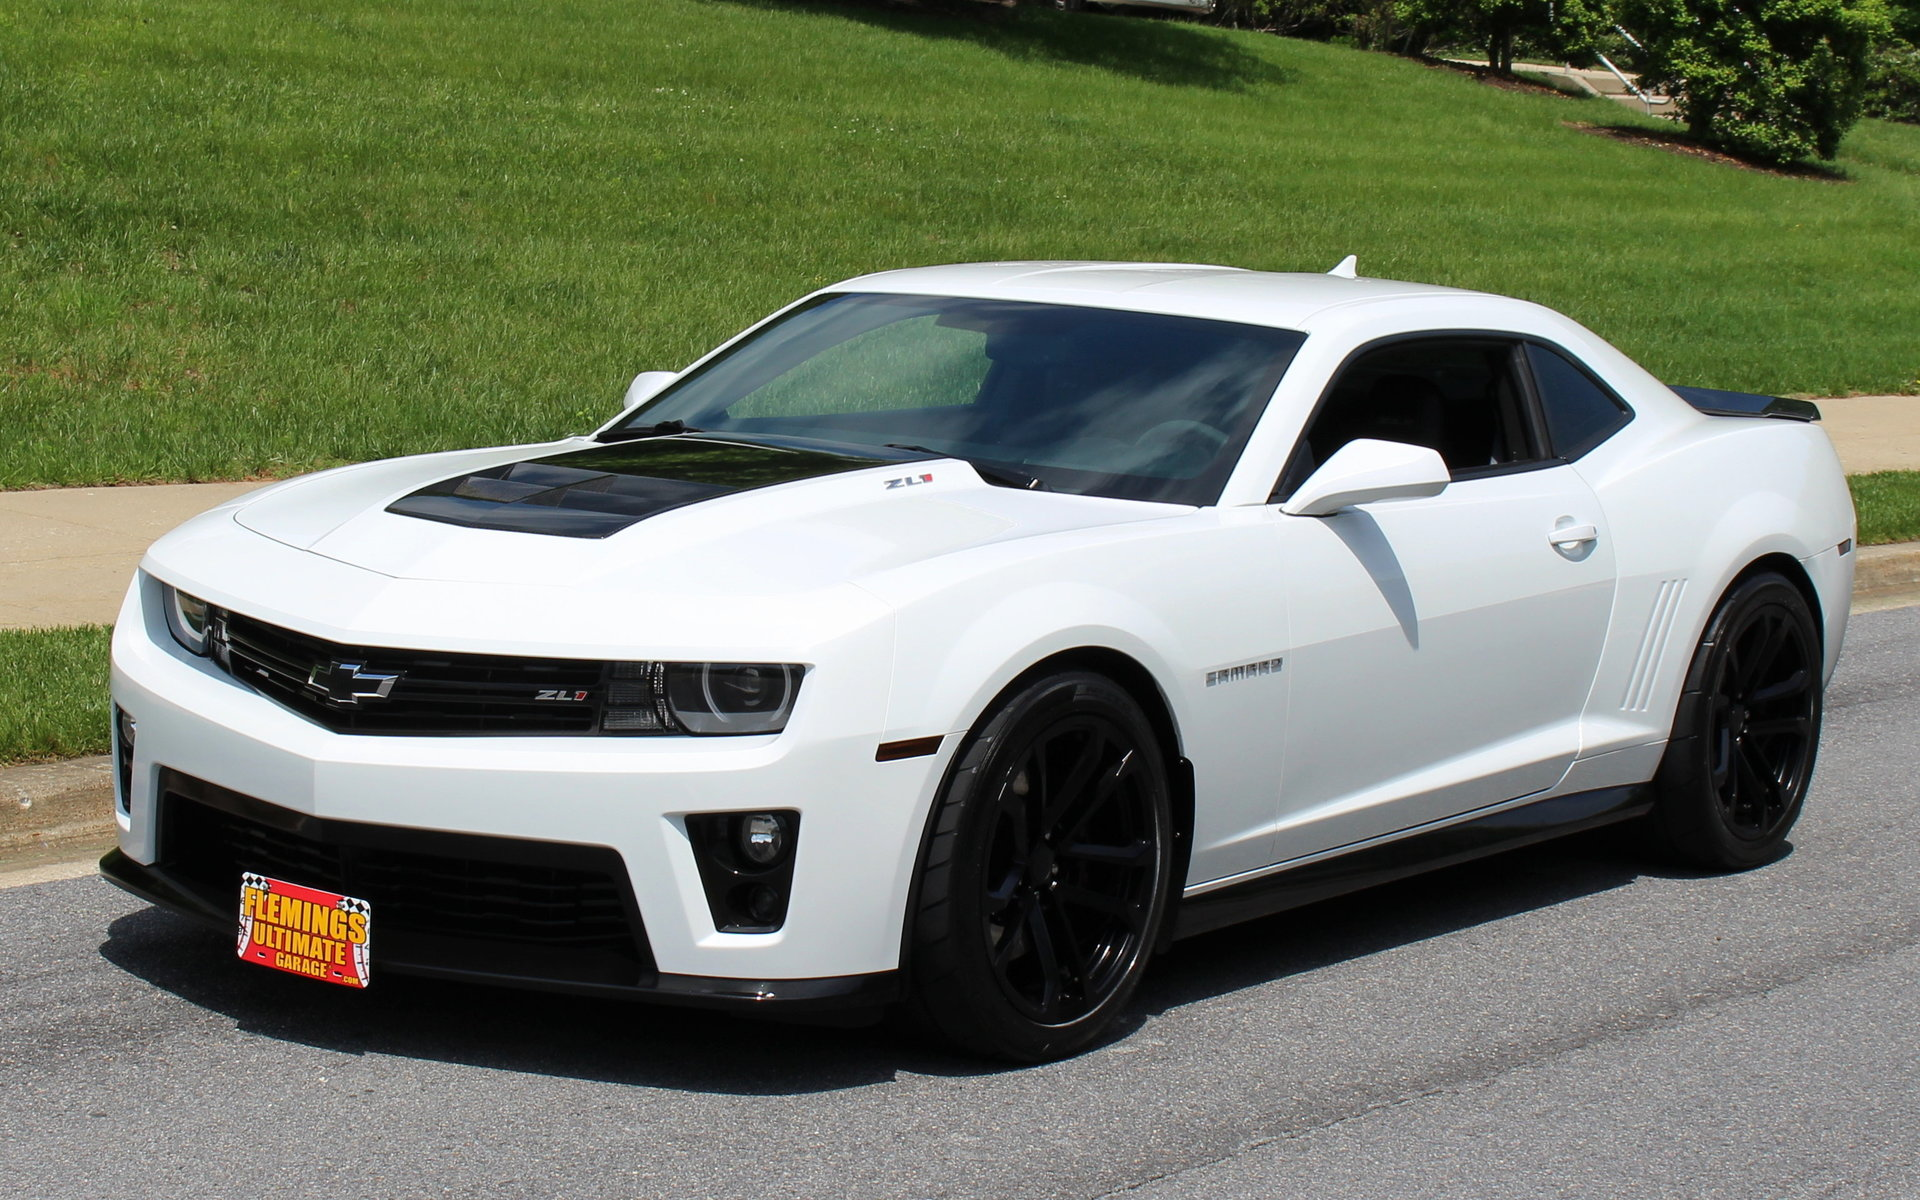 chevy camaro for sale - HD1920×1200